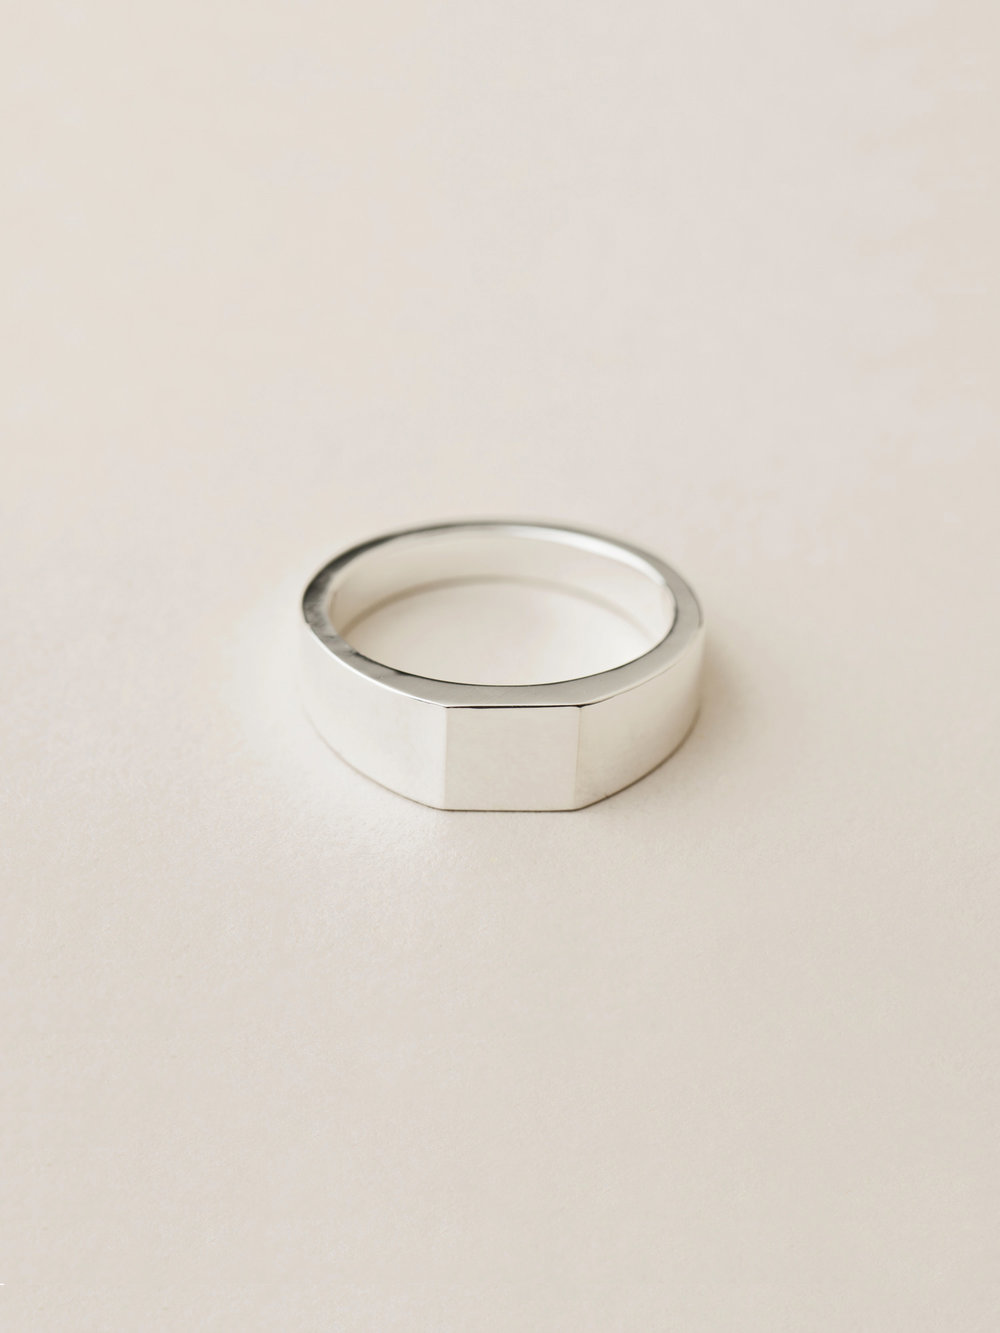 Siegelring Minima, mittel quadratisch in 925 Silber  Signet ring Minima, medium square in sterling silver